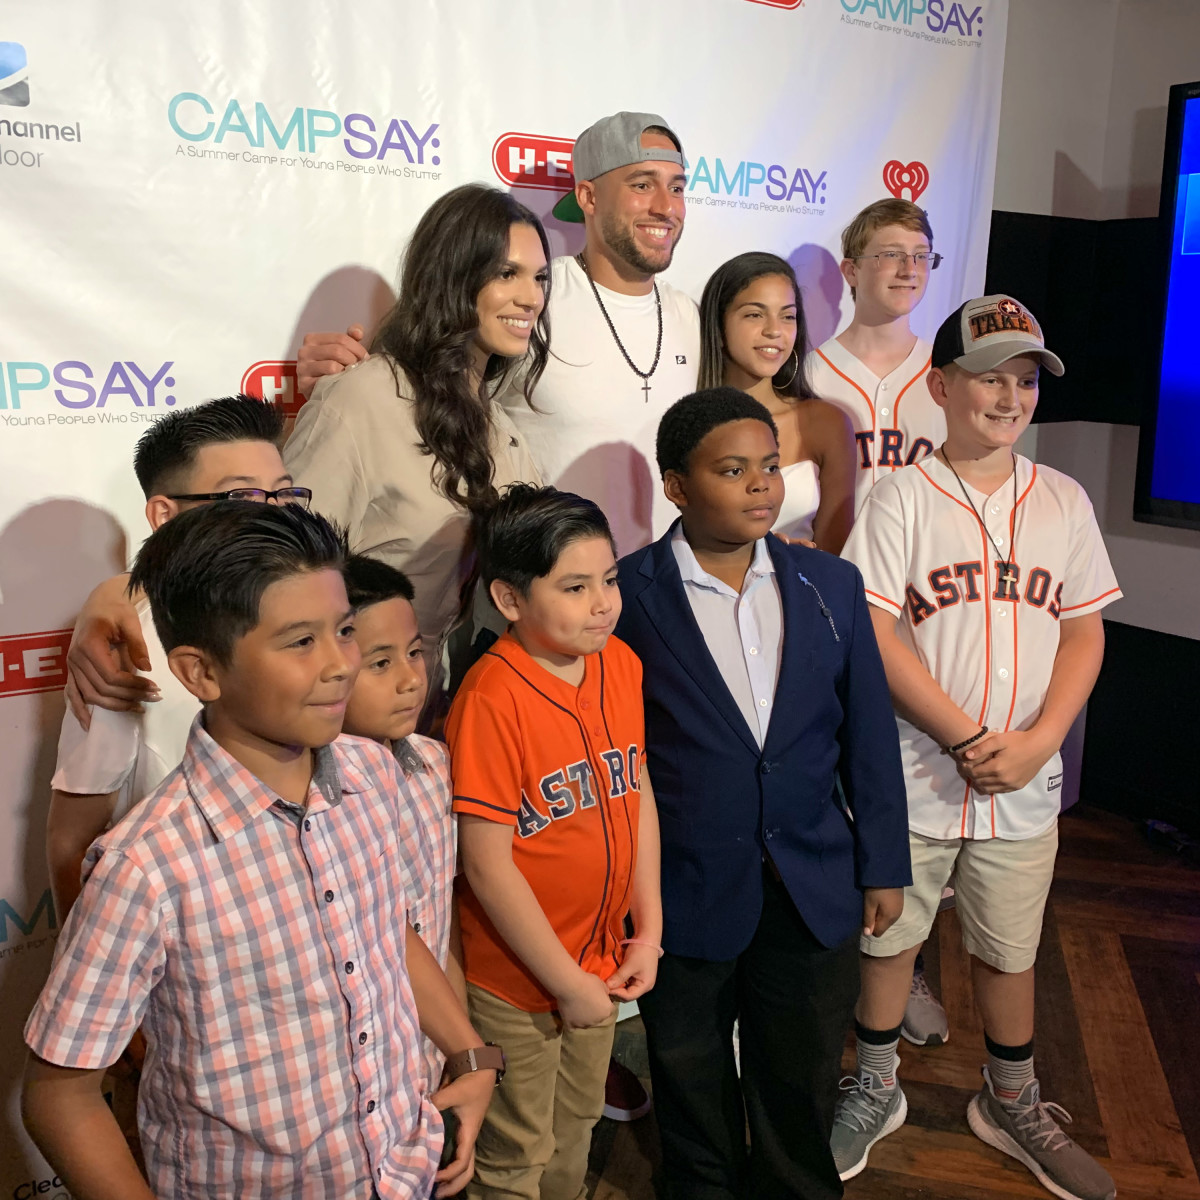 George Springer Camp SAY Bowling event 2019 Springer